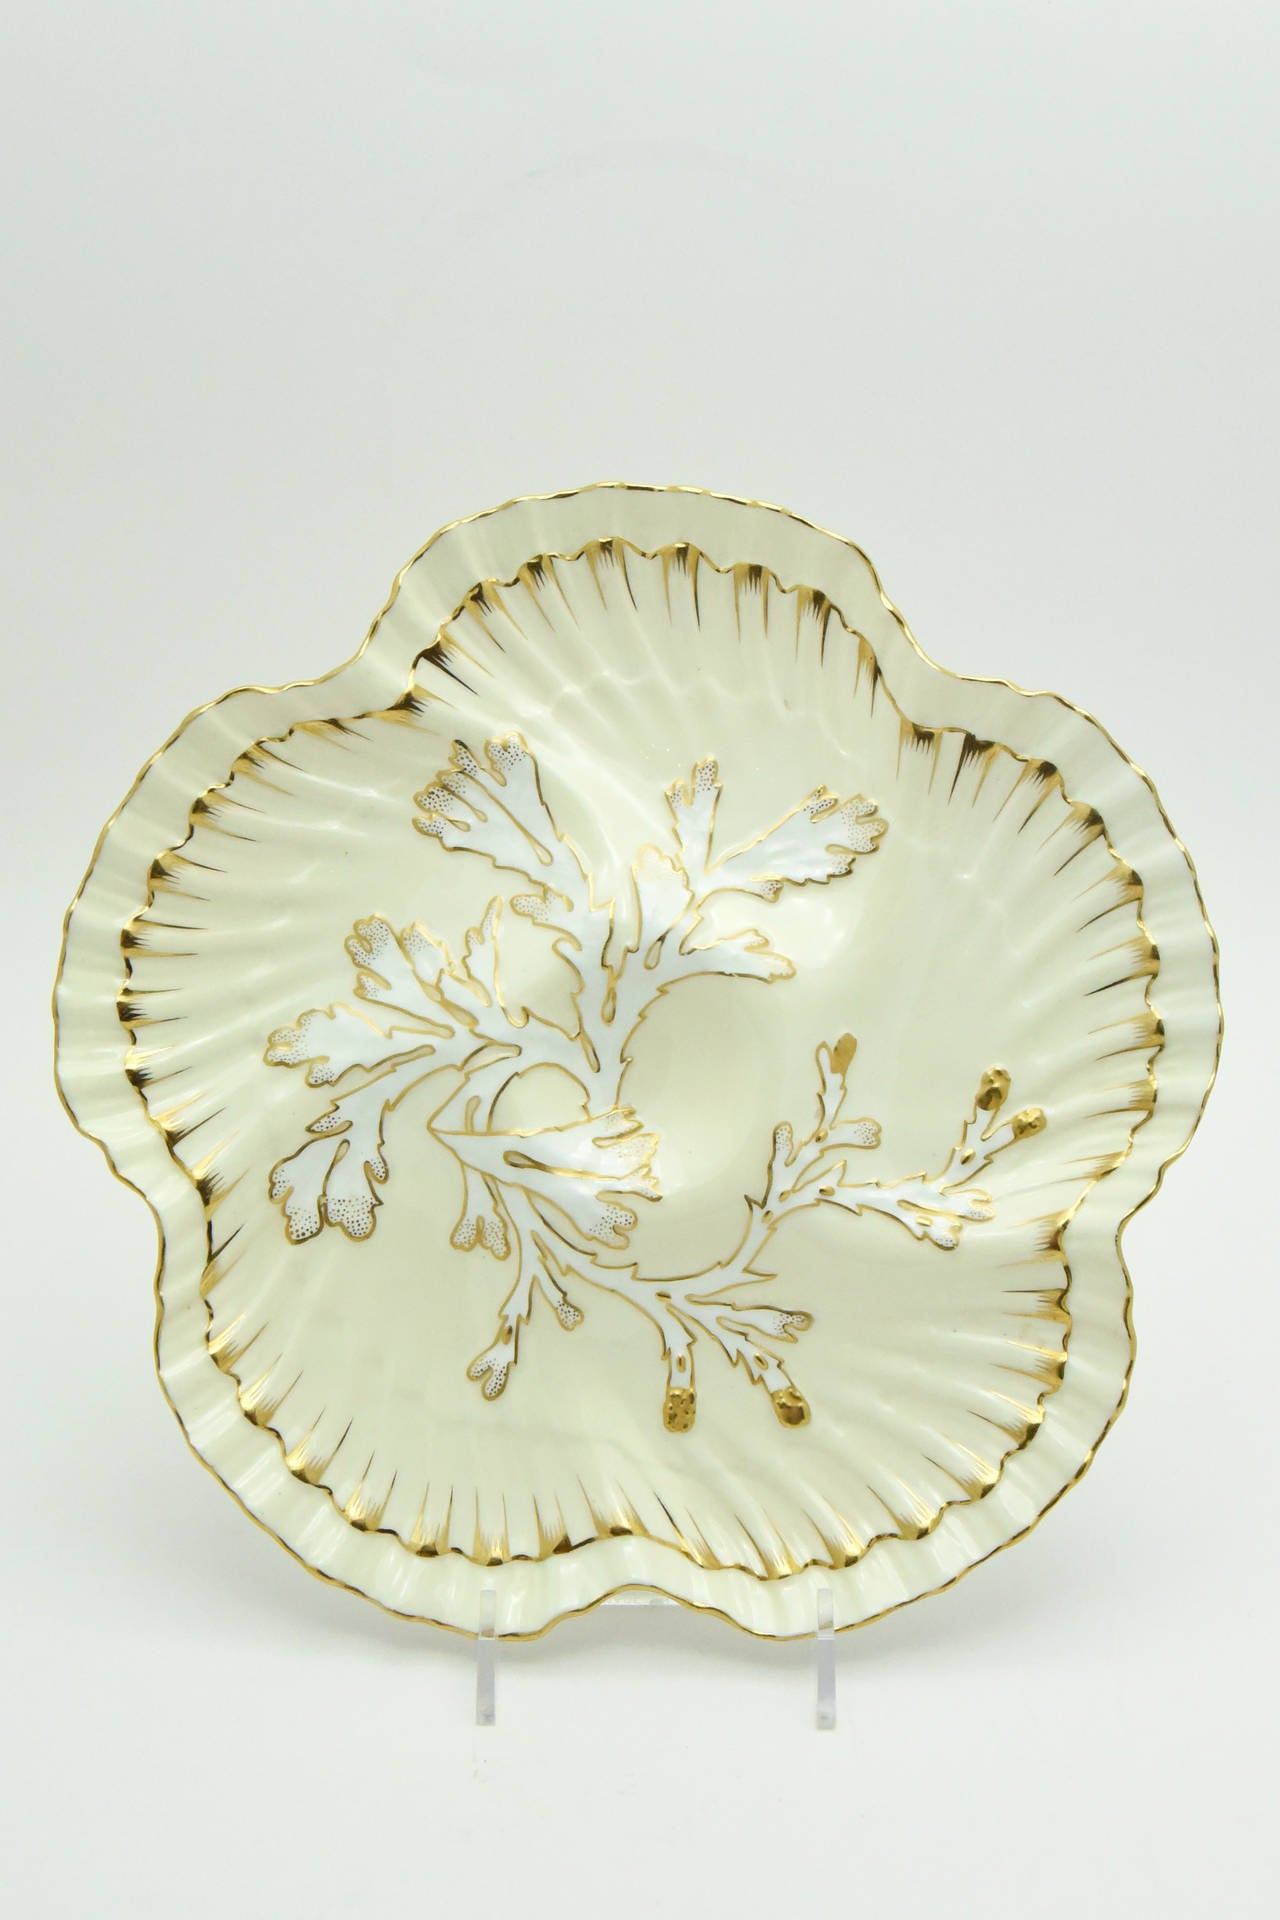 Aesthetic Movement Set of 12 19th c. Brownfield's for Tiffany Ivory & Gold Coral Reef Oyster Plates For Sale